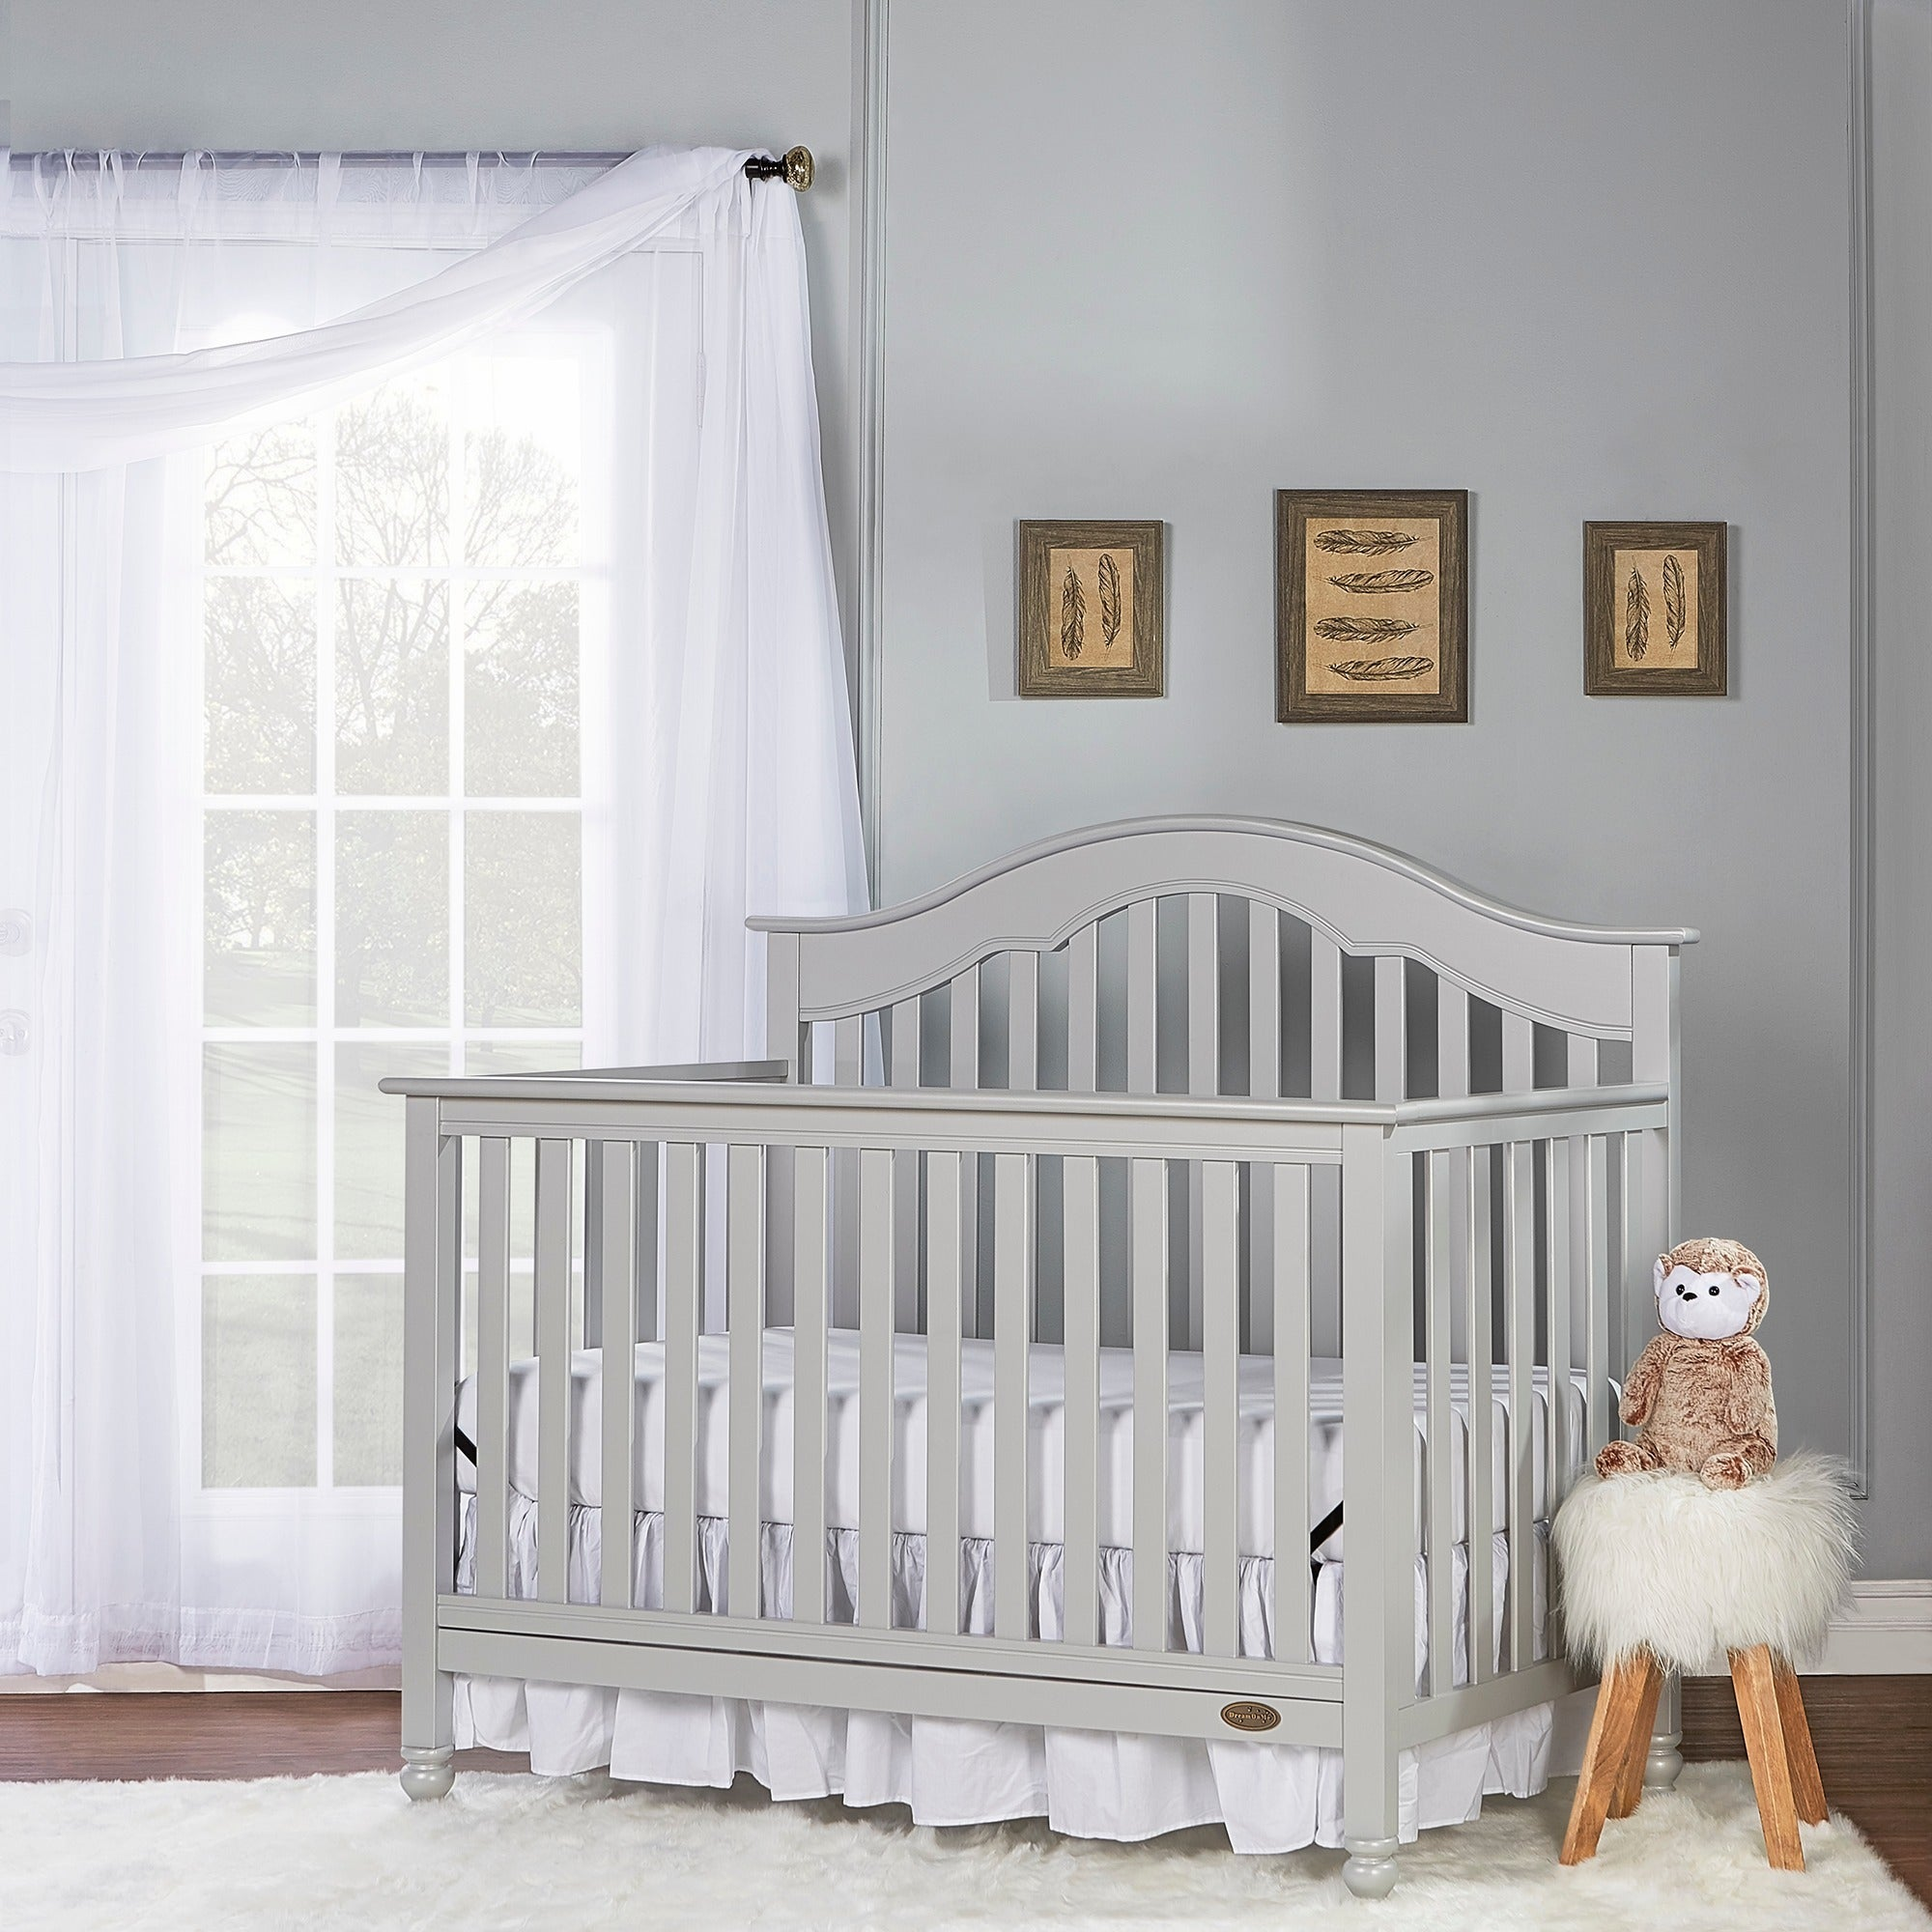 cherry classic crib toddler in dollar baby dream million with rail safety s nicolalennon magnifier convertible guard cribs